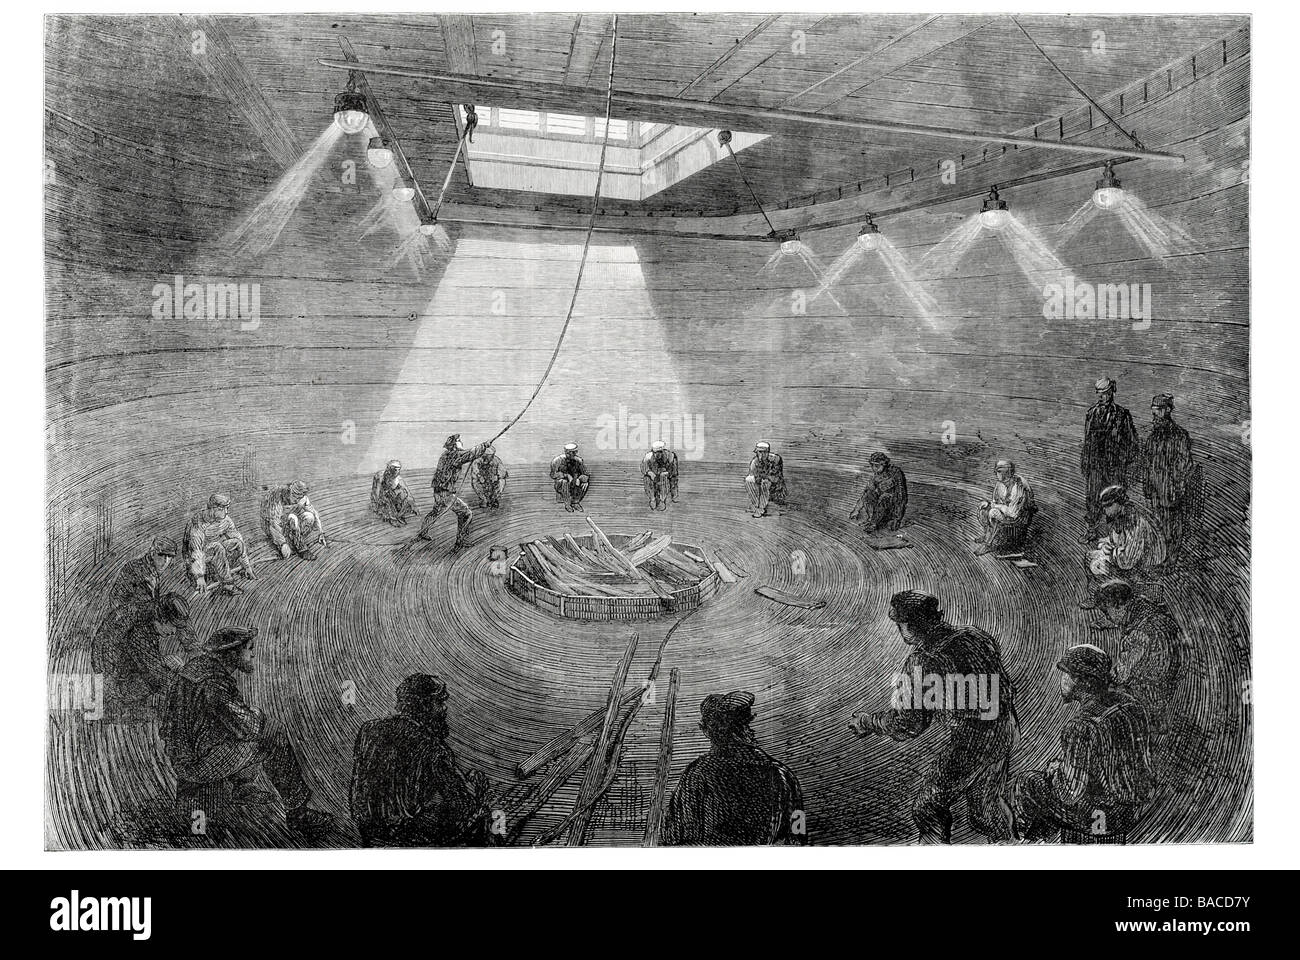 coiling the atlantic telegraph cable in one of the tanks on board the great eastern Sir James Anderson 1865 - Stock Image